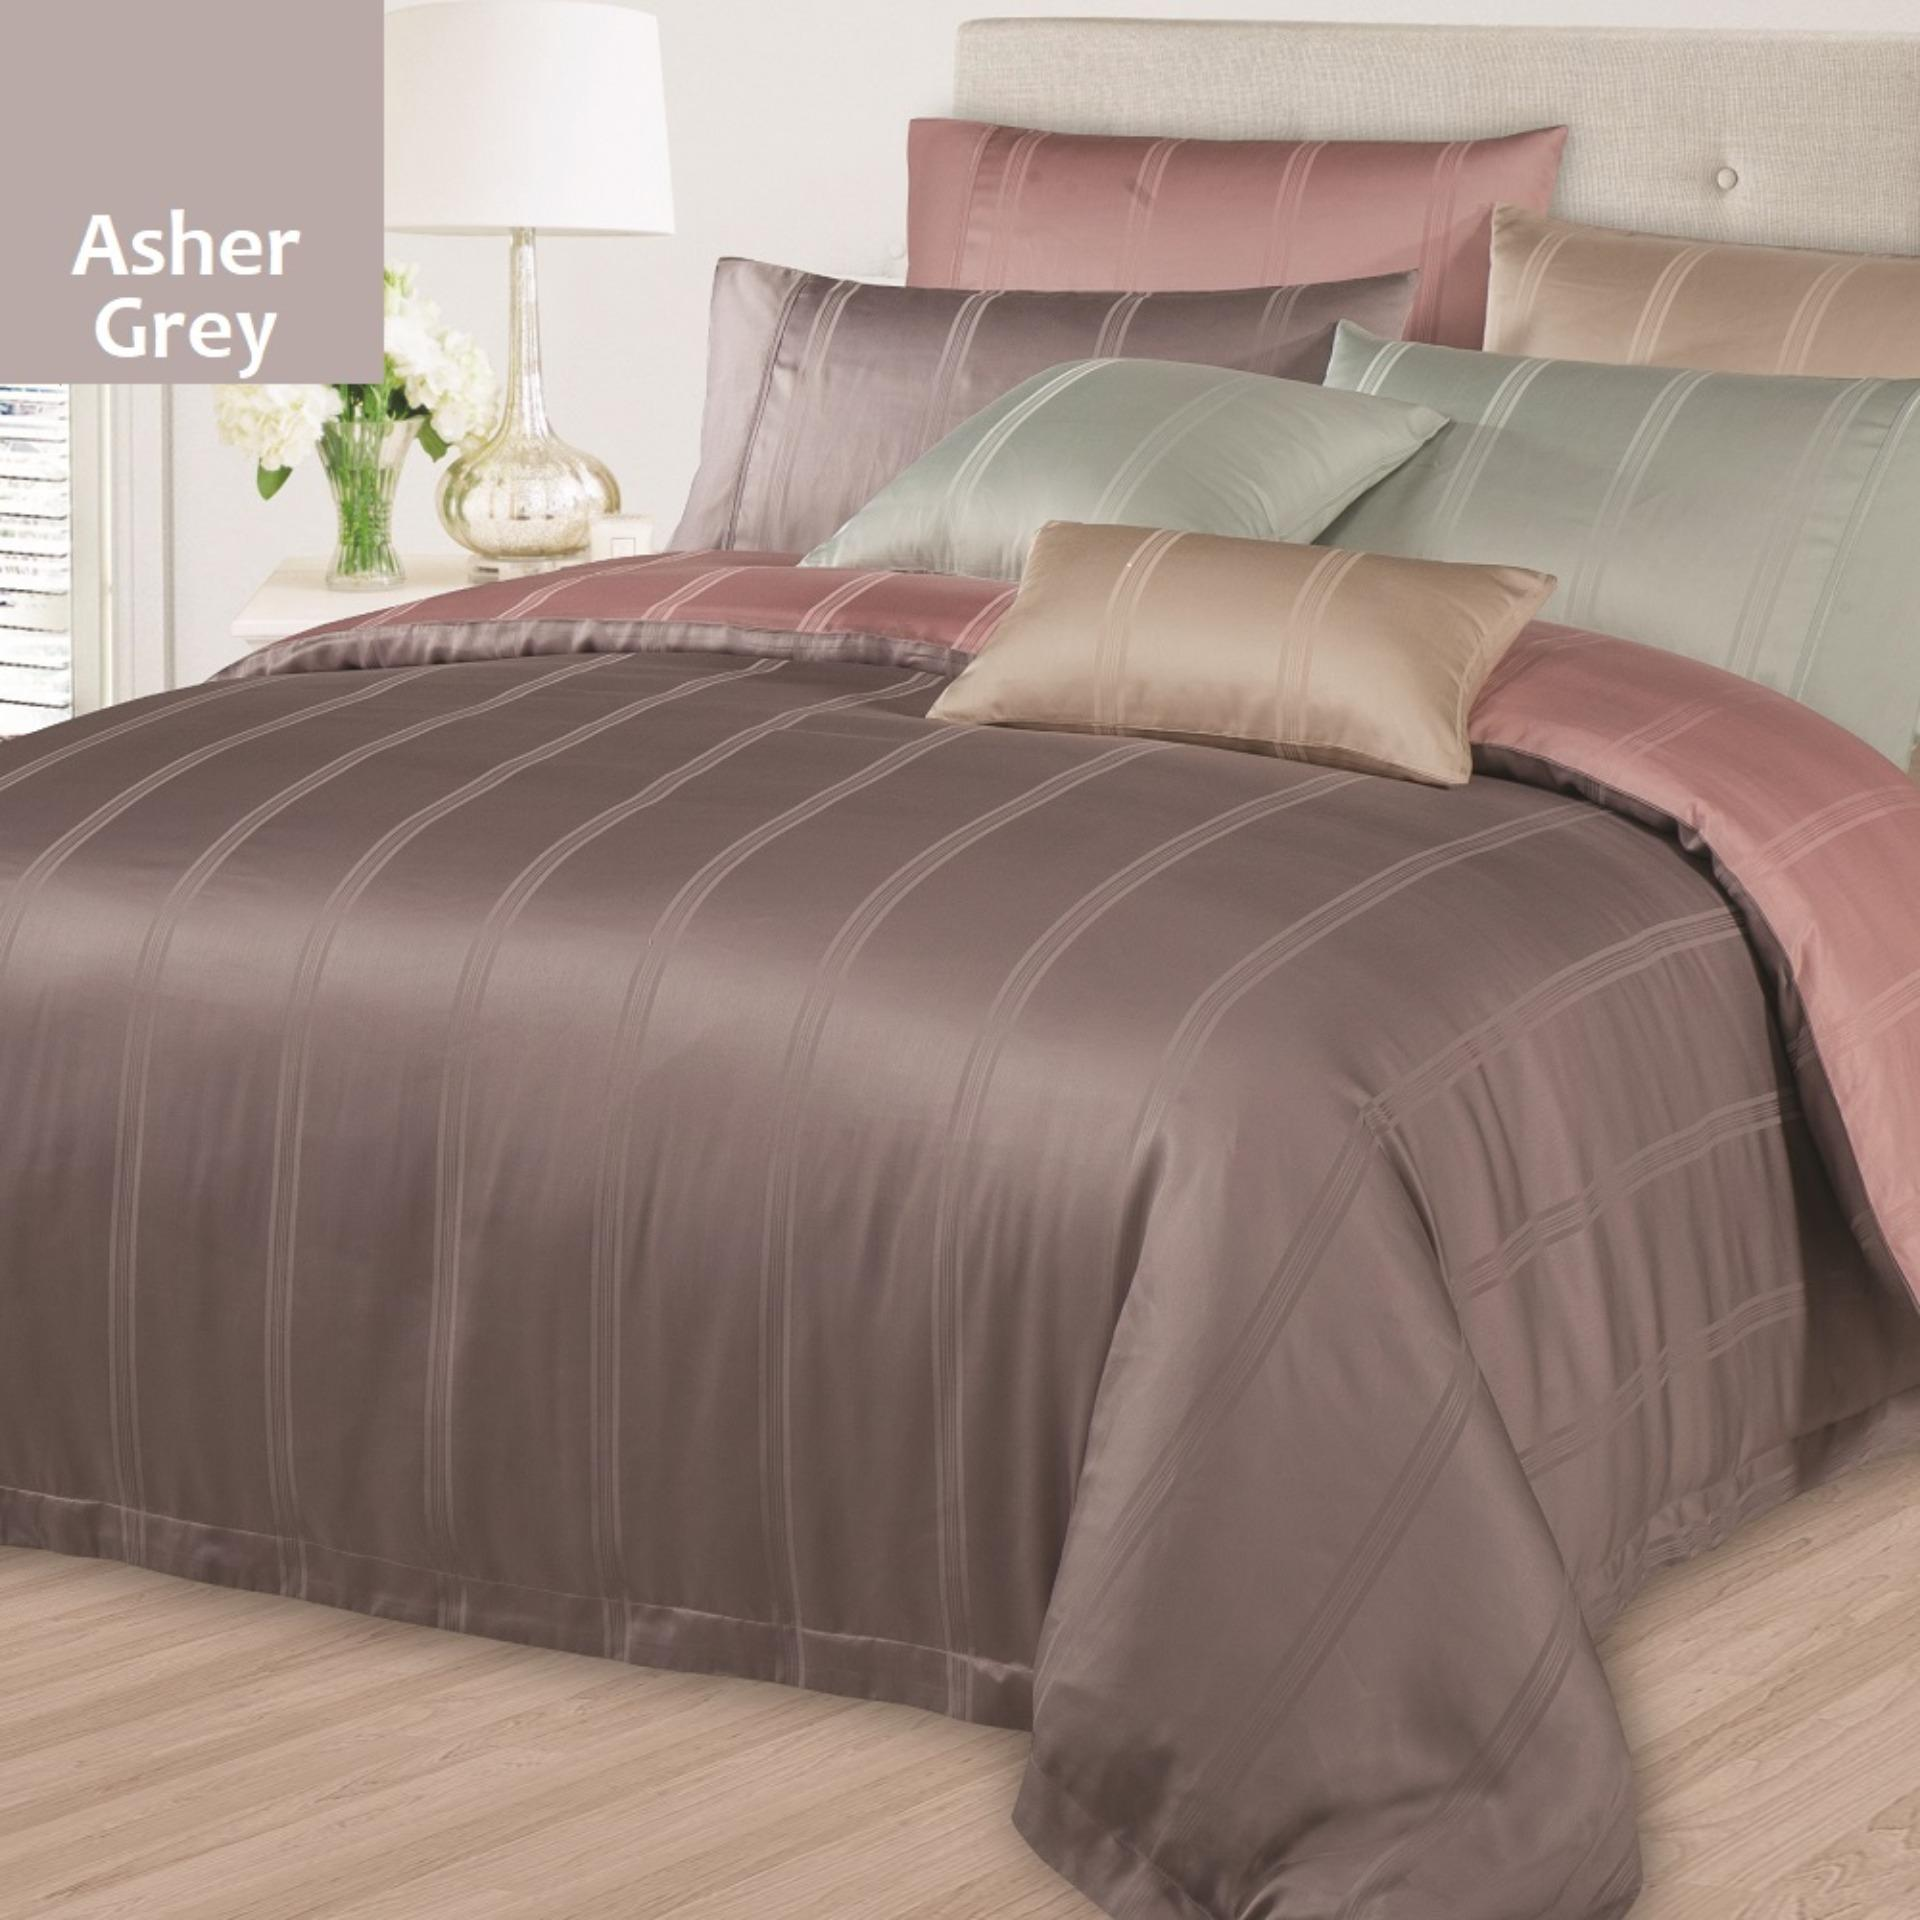 Sale Akemi Modal Unity Anya Stripes Asher Grey Bolster Case Singapore Cheap